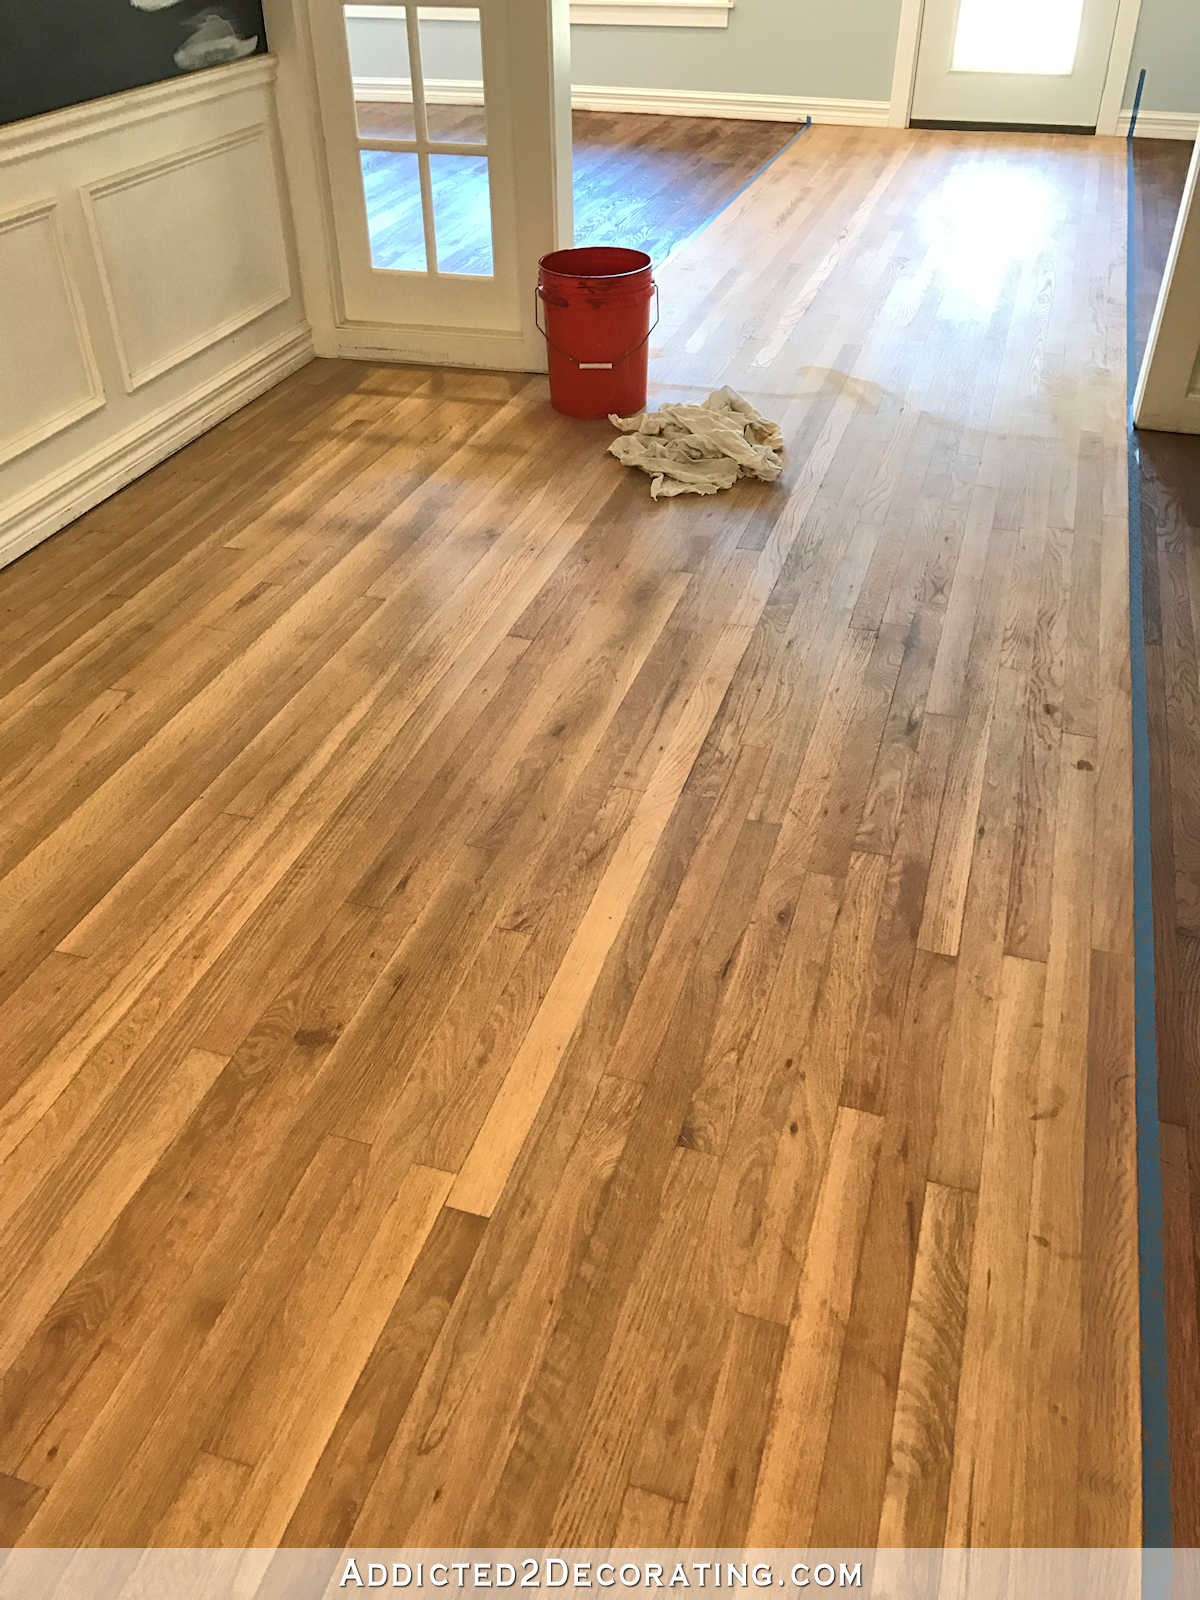 how to refurbish hardwood floors yourself of adventures in staining my red oak hardwood floors products process with staining red oak hardwood floors 8 entryway and music room wood conditioner